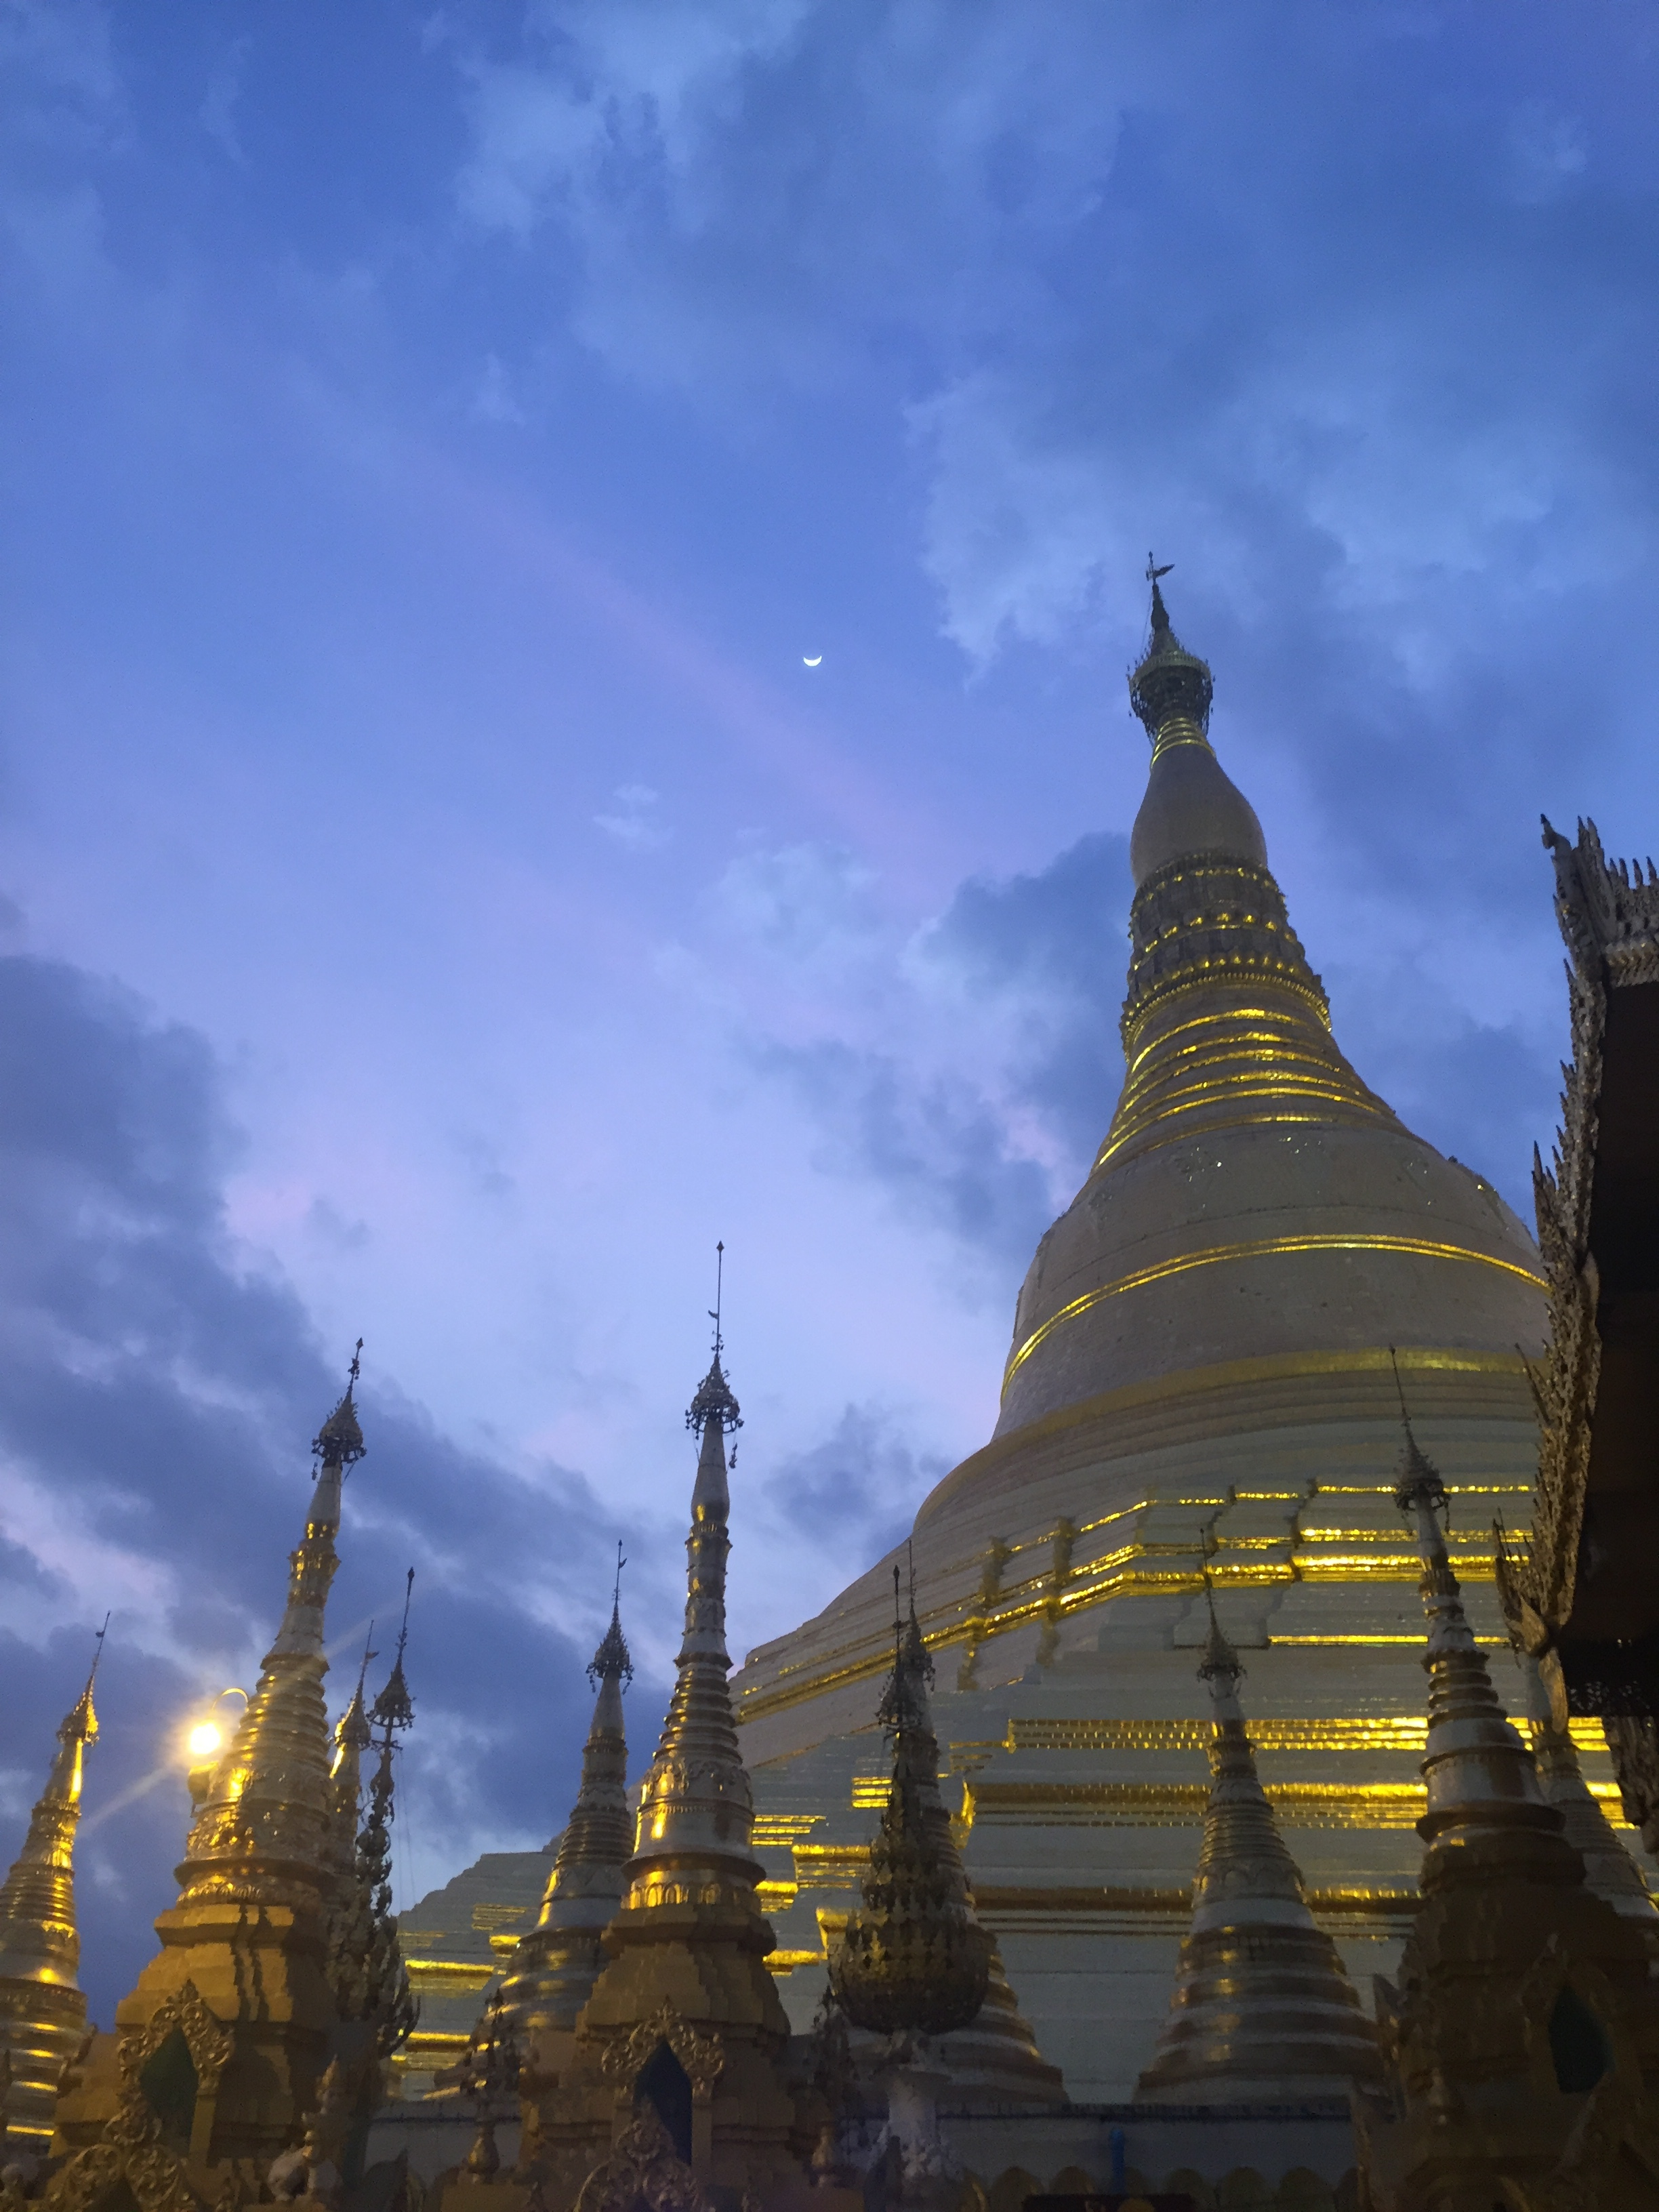 The golden and enormous Shwedagon Pagoda in Yangon, our last stop in Myanmar.